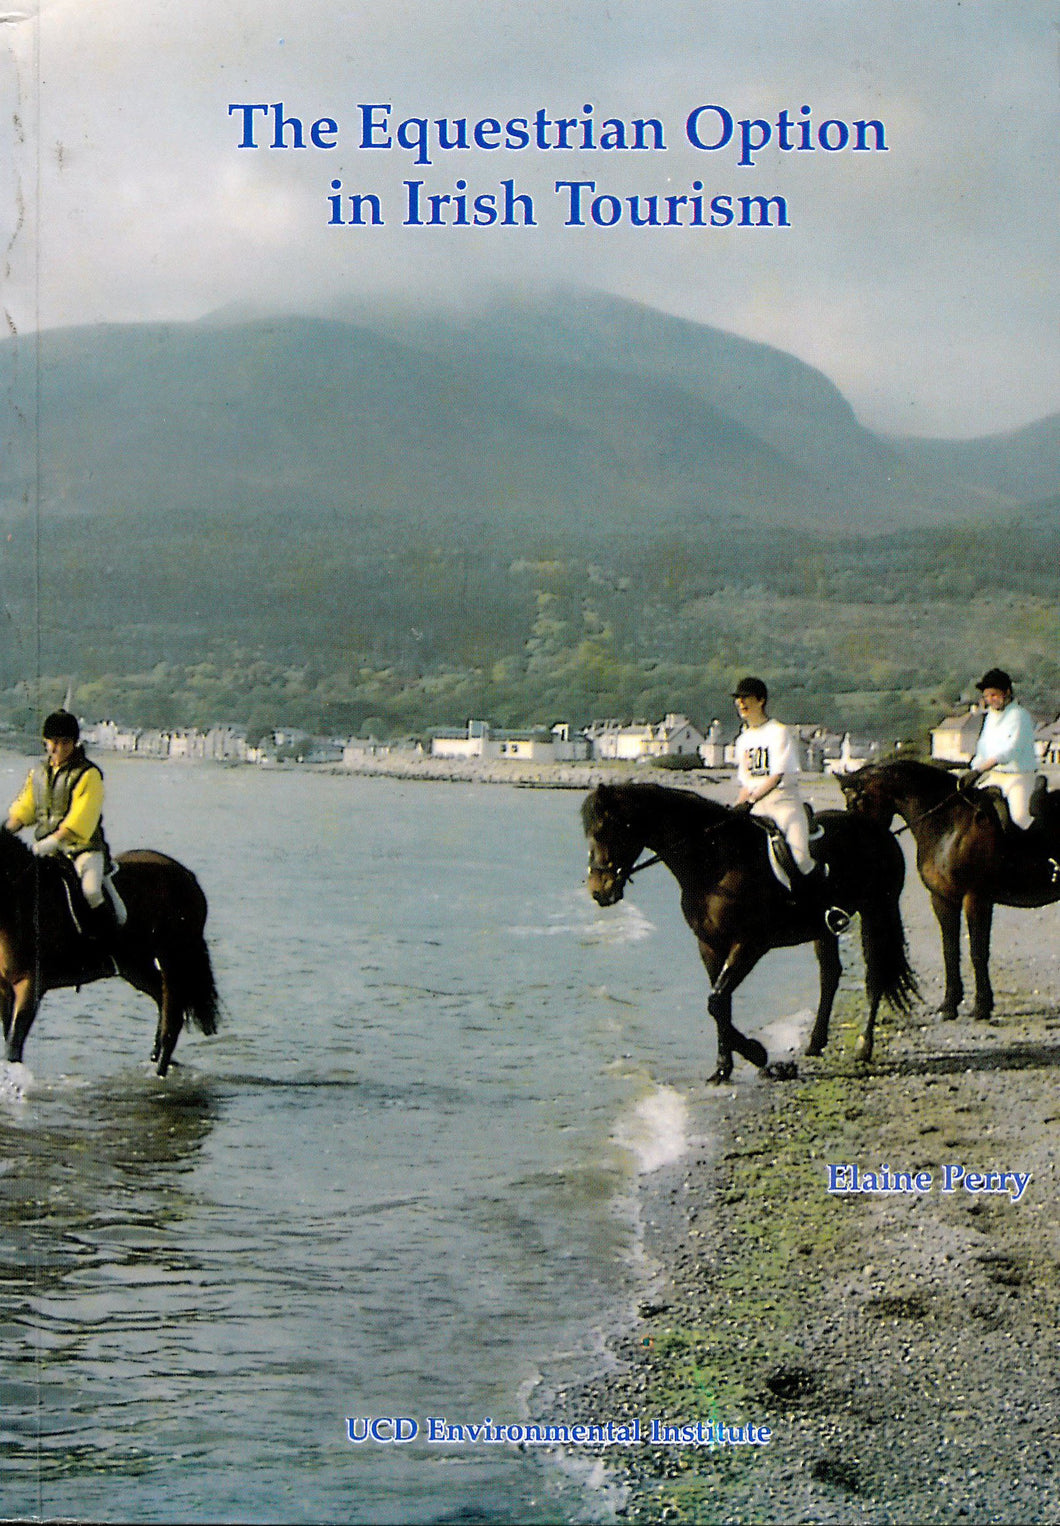 The equestrian option in Irish tourism